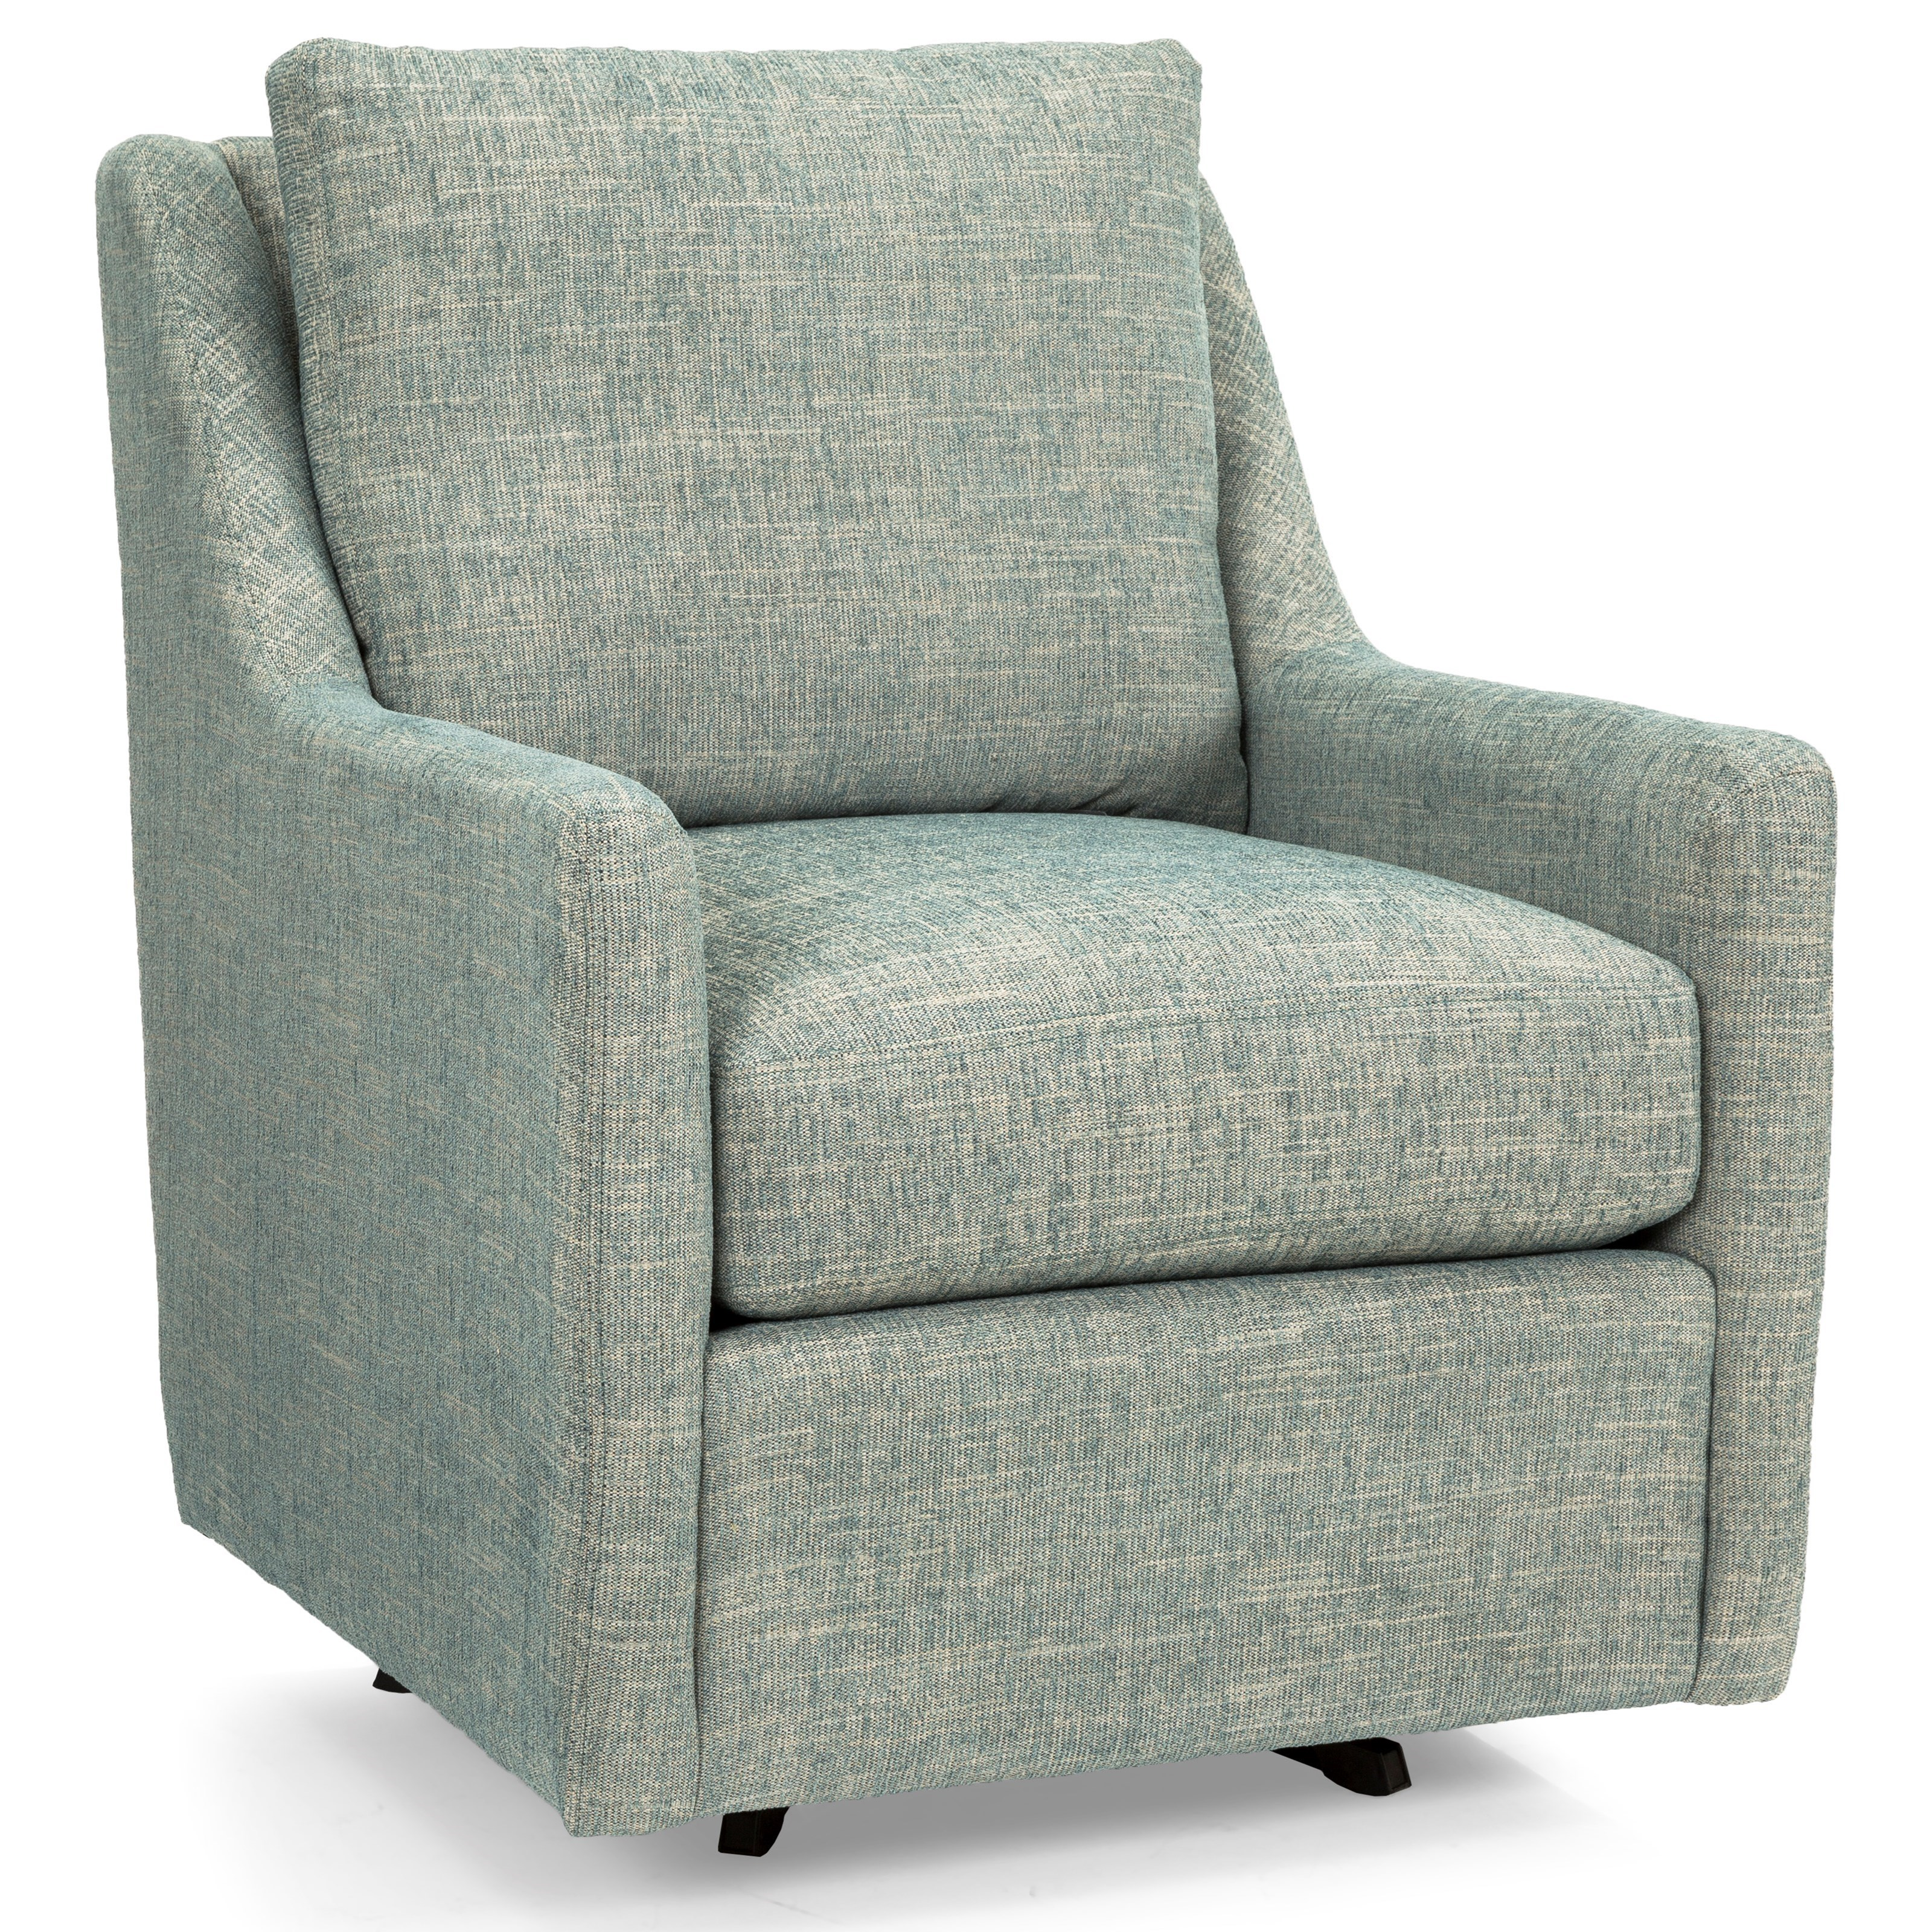 2627 Swivel Chair by Decor-Rest at Upper Room Home Furnishings